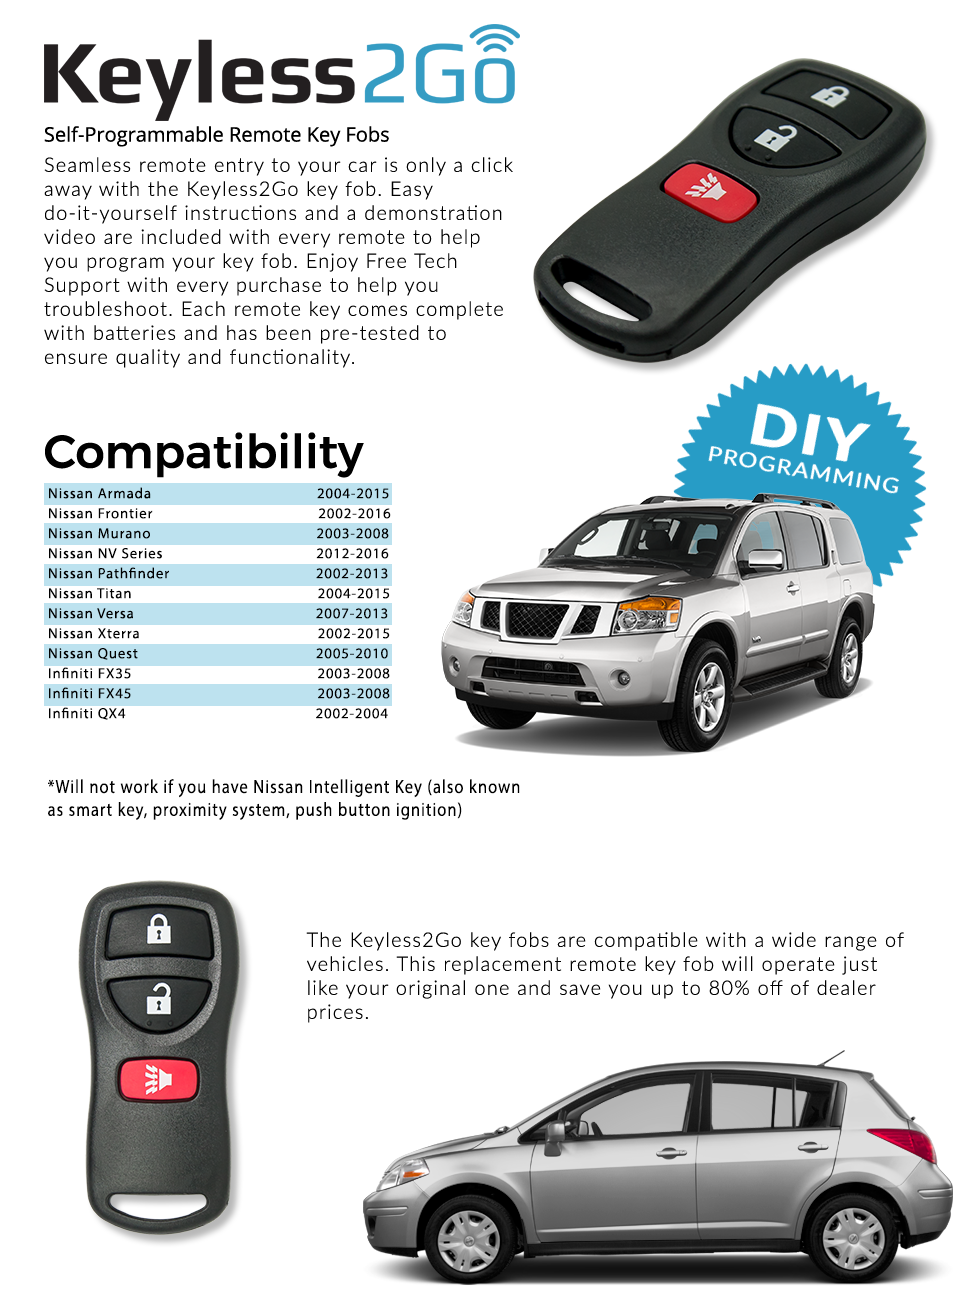 Nissan Rogue Service Manual: Without intelligent key system